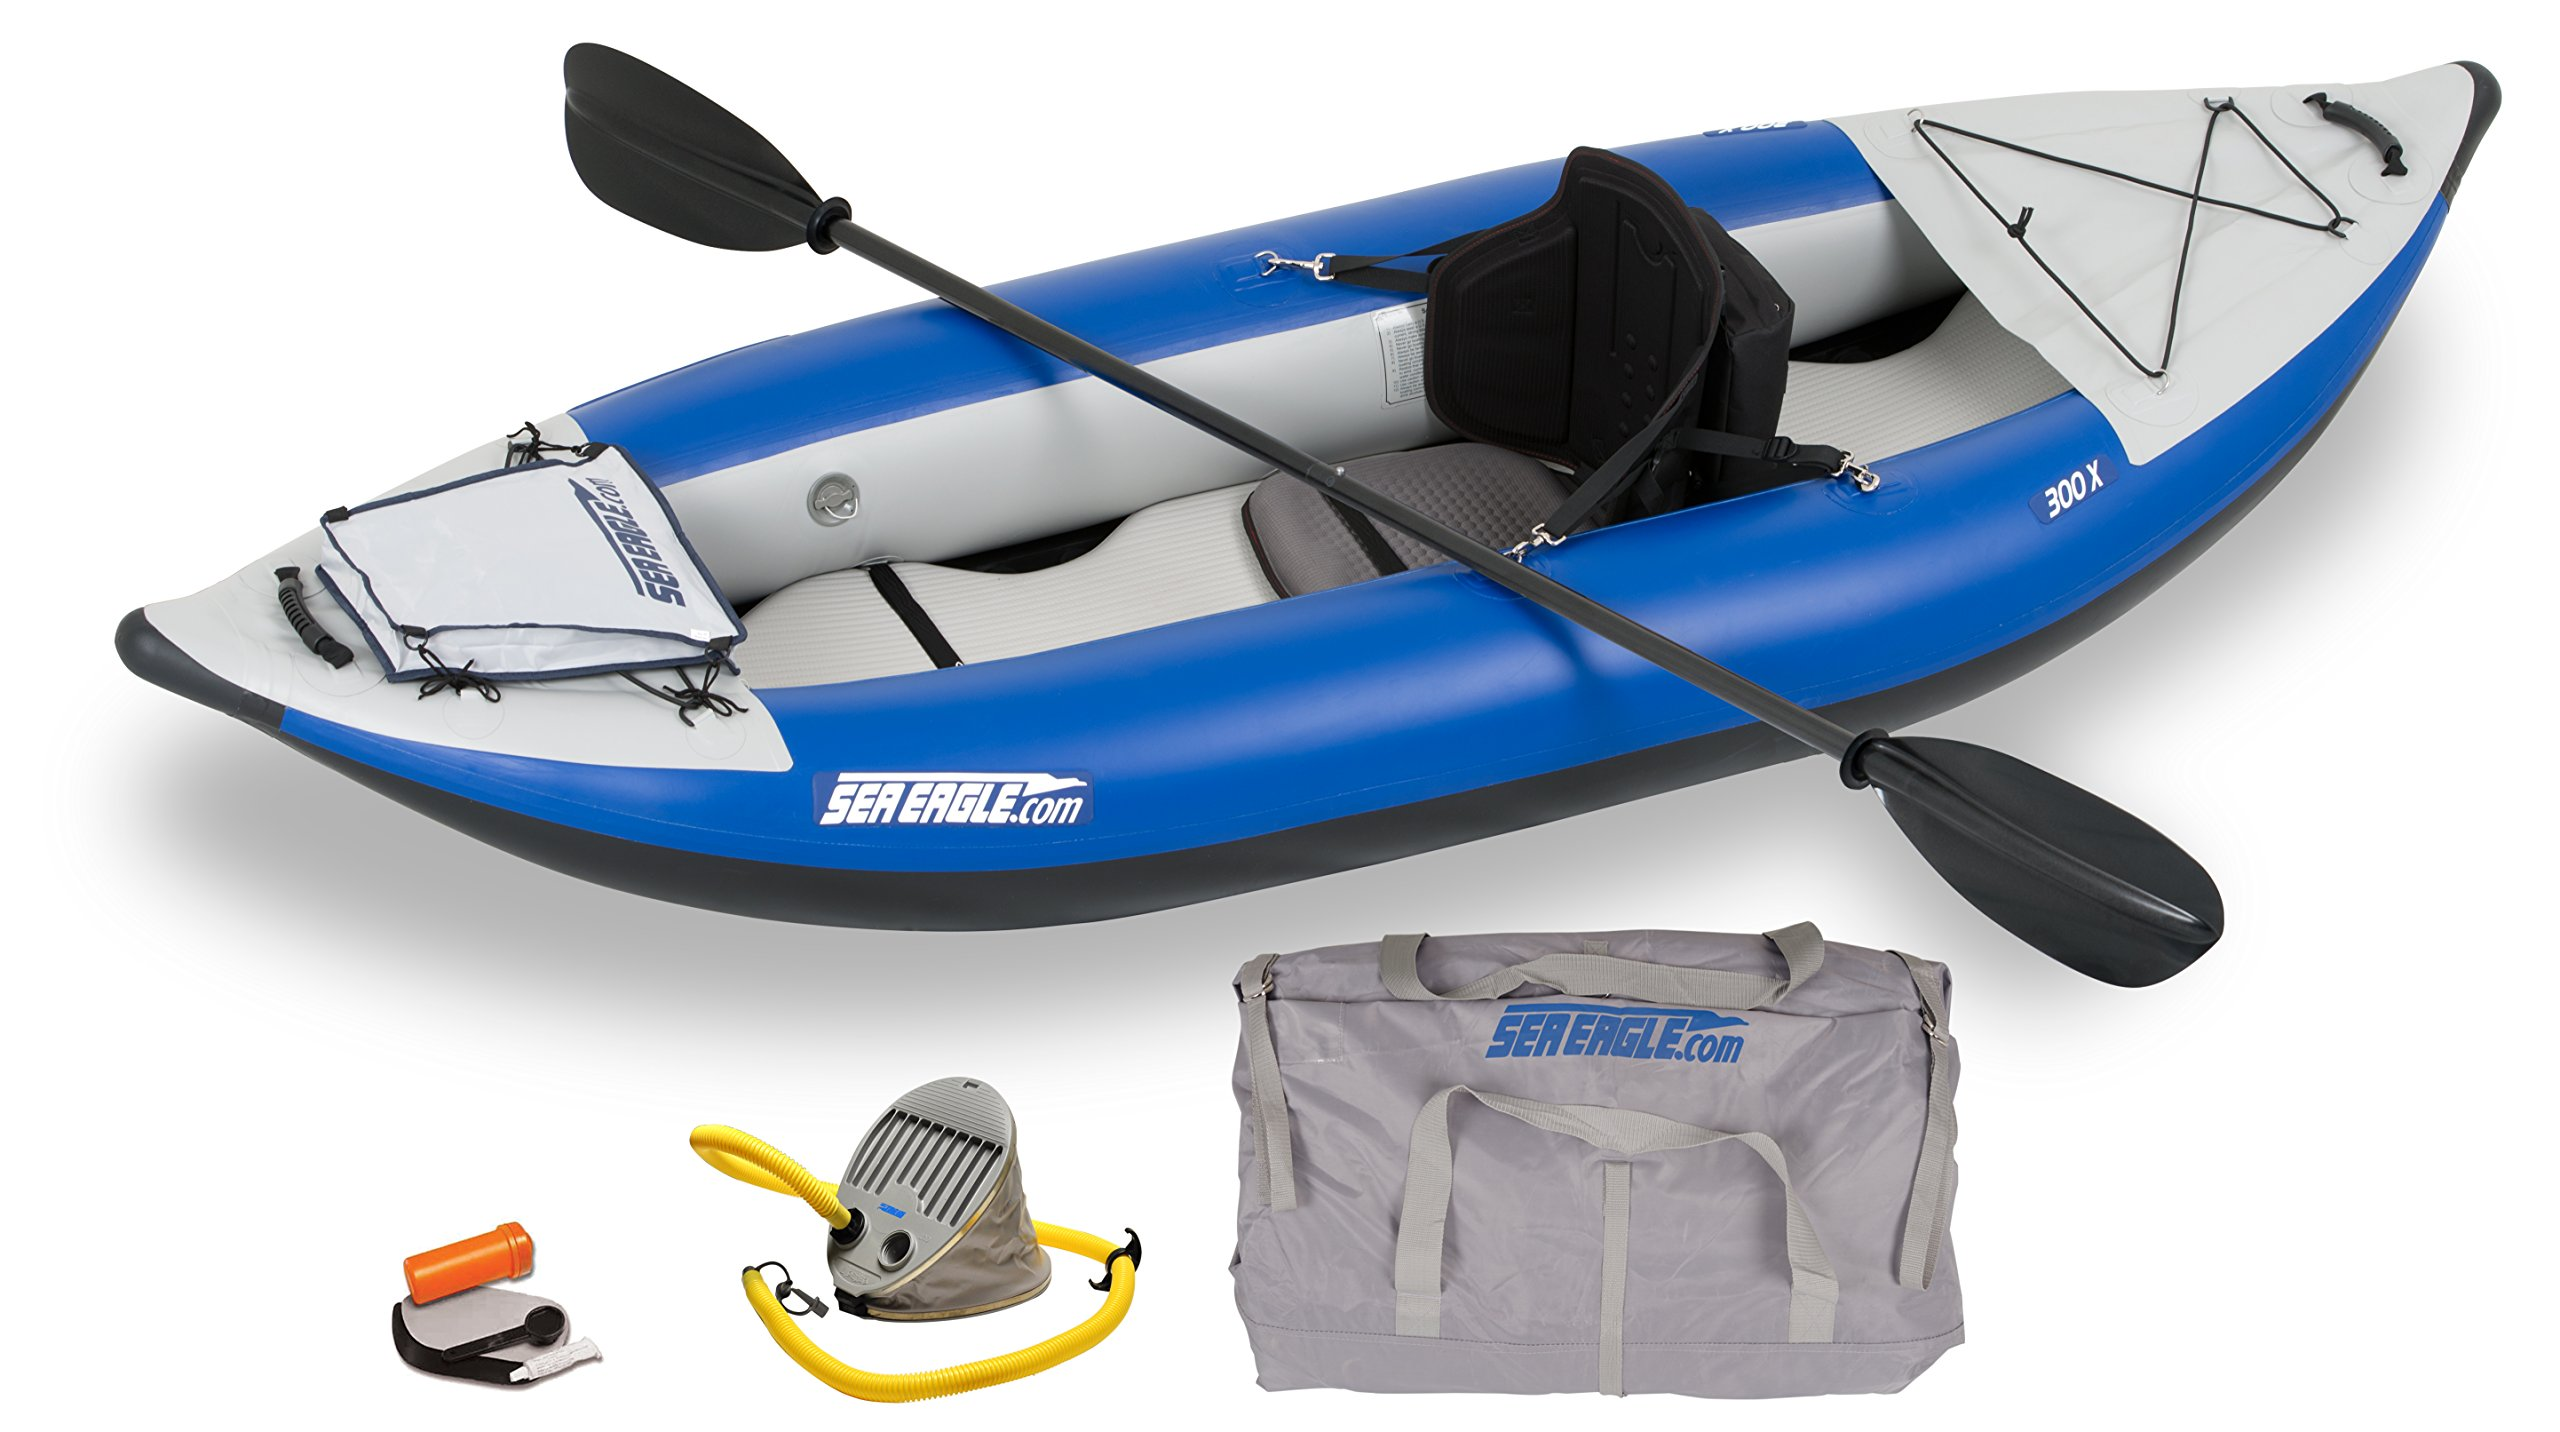 Sea Eagle 300x Inflatable Explorer Kayak Pro Carbon Package by Sea Eagle